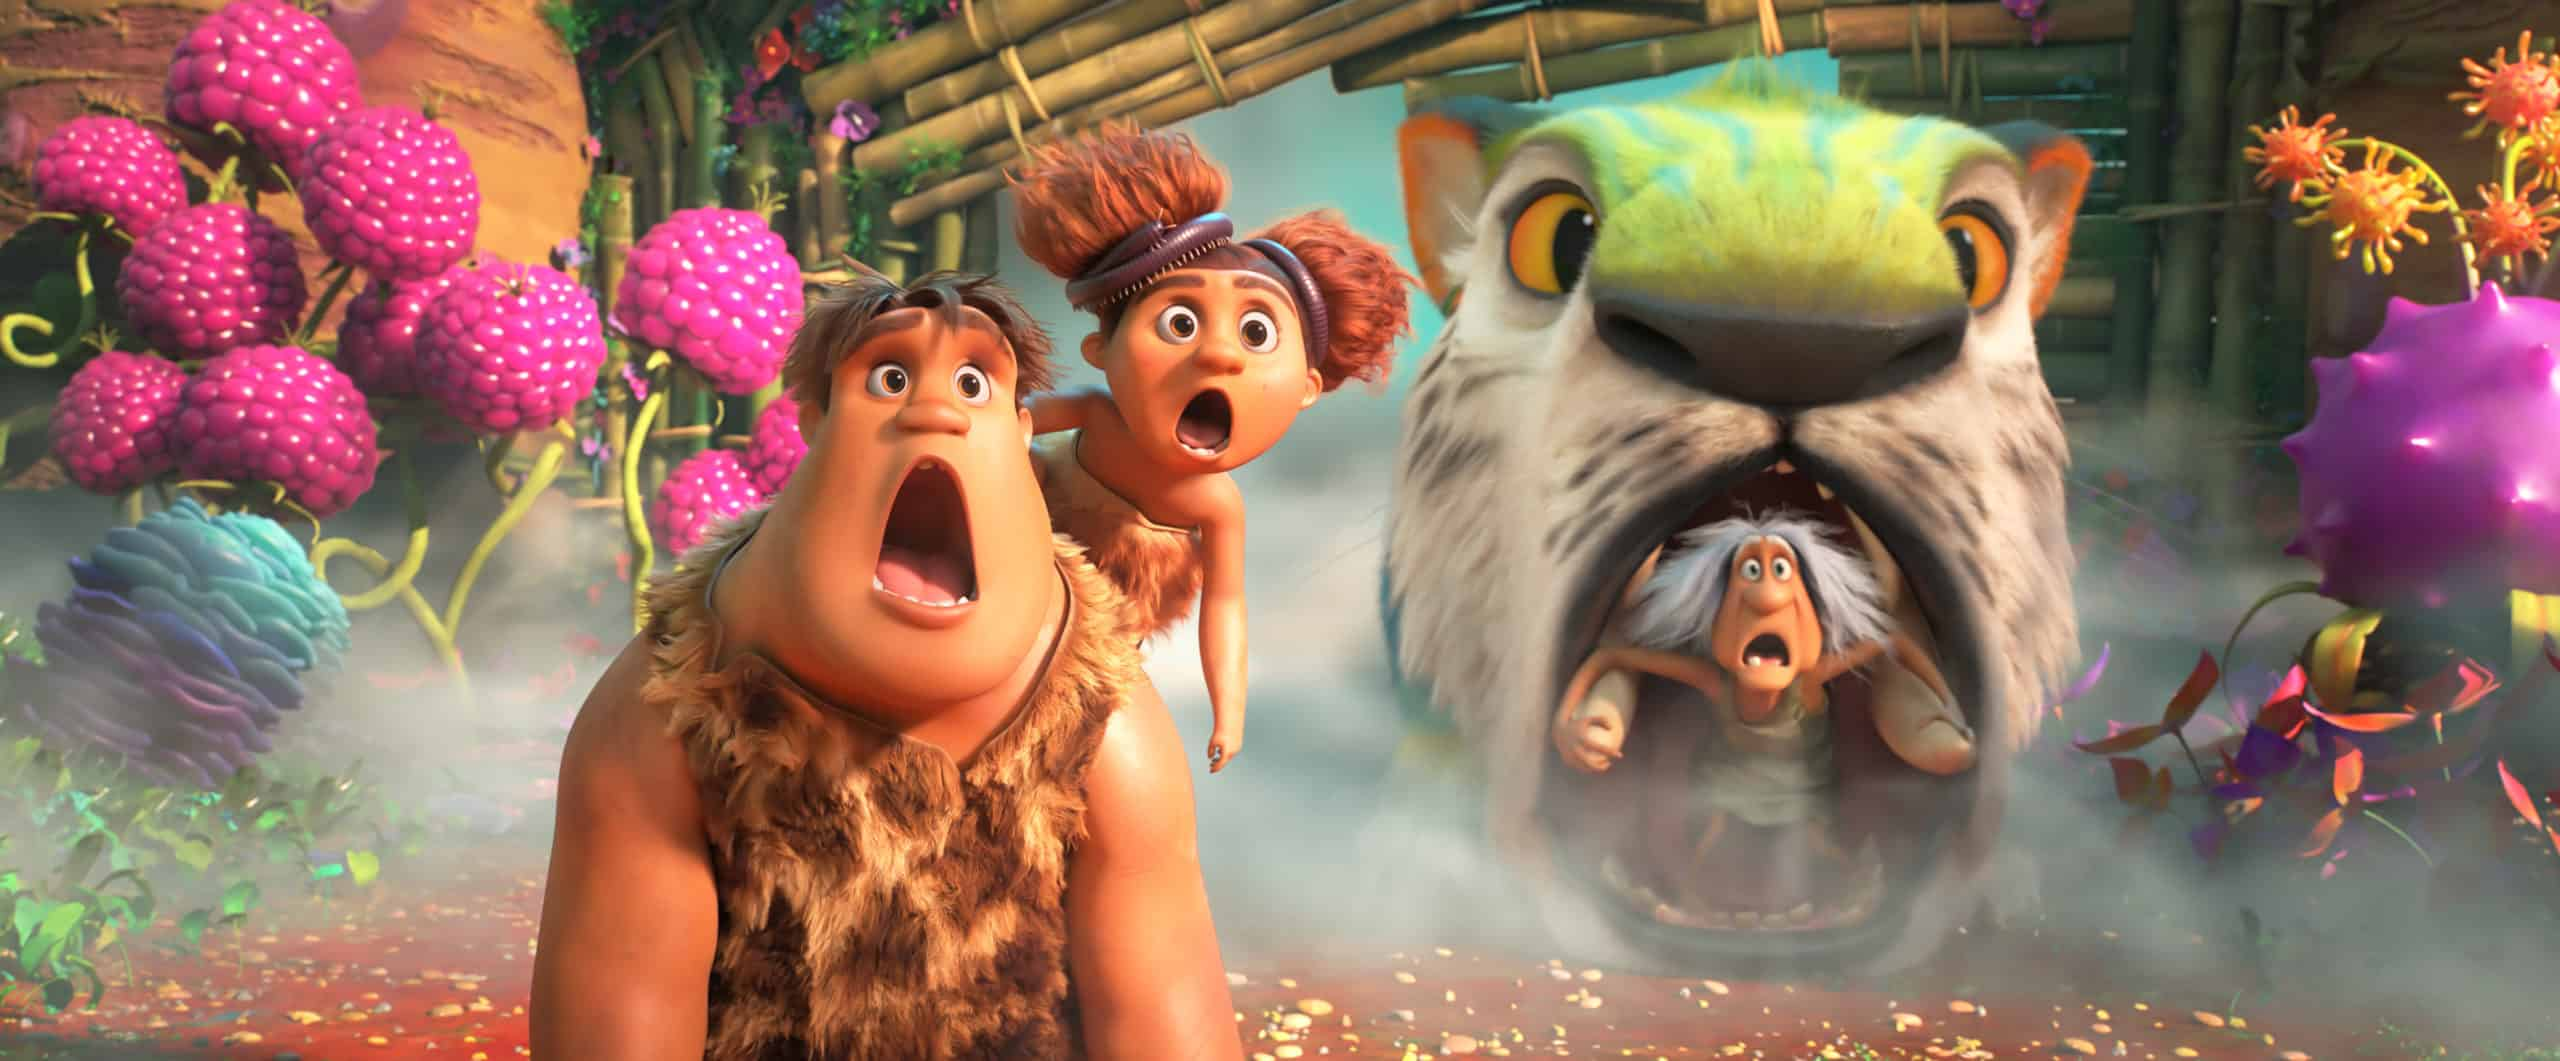 The Croods: A New Age (2020) [Film Review] 2